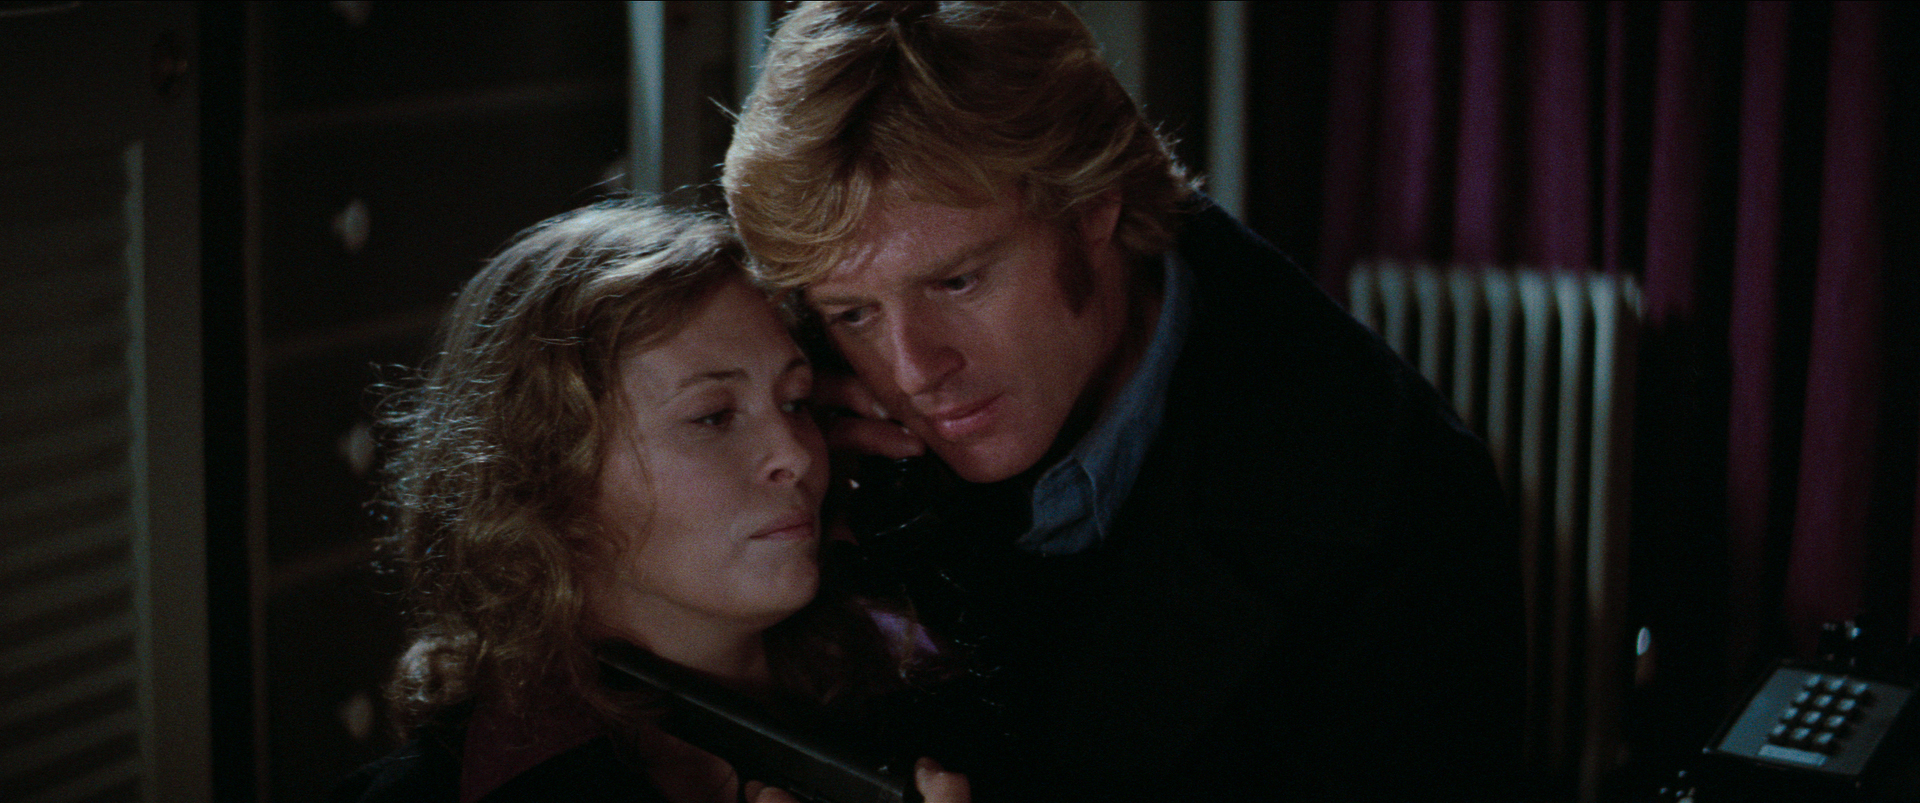 Trois_Jours_du_Condor_Redford_Dunaway-cliff-and-co